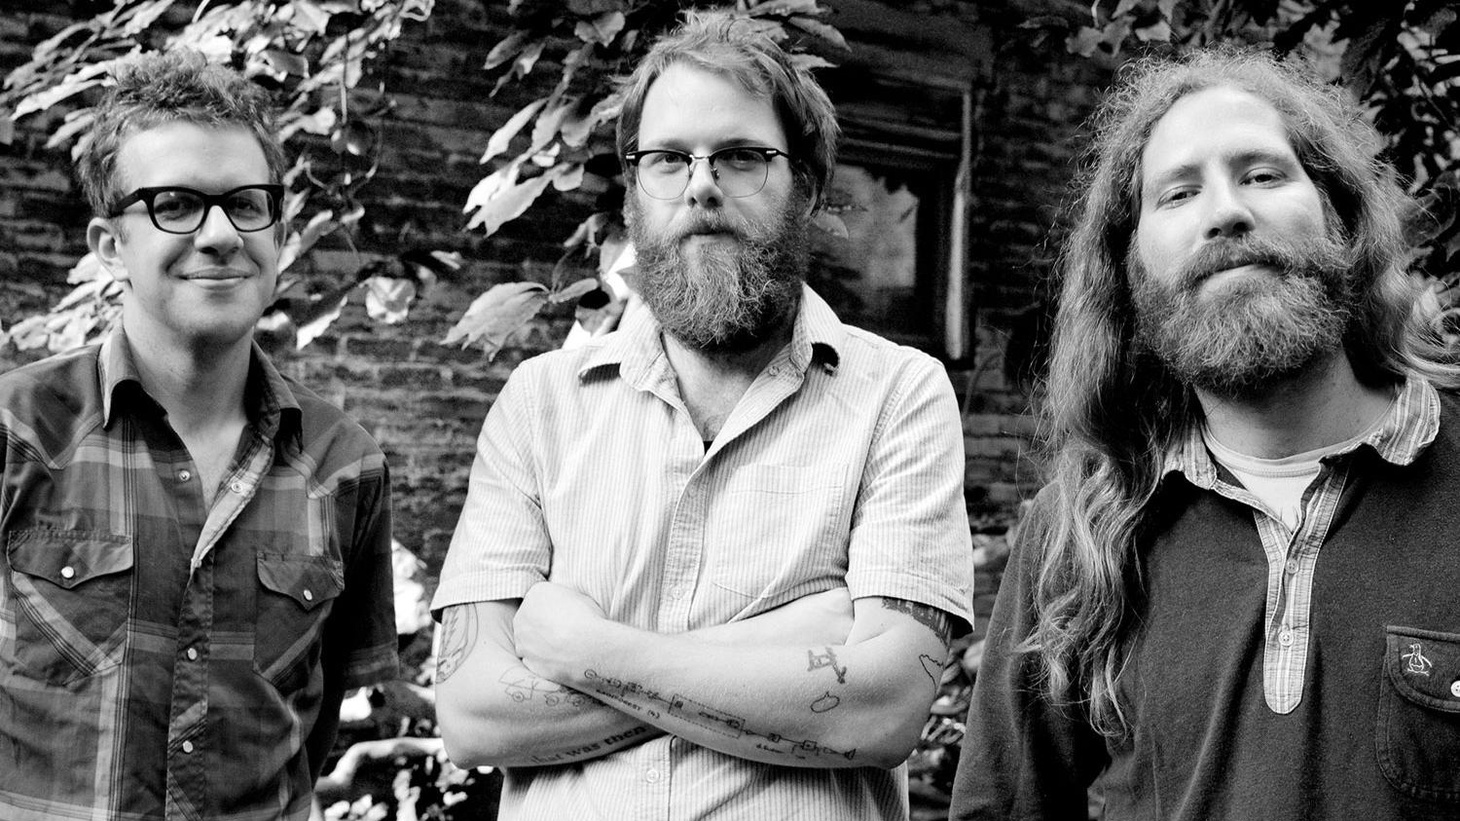 With a new recording that ranges from free jazz to Delta blues, Megafaun proves they can cover all kinds of classic American music...